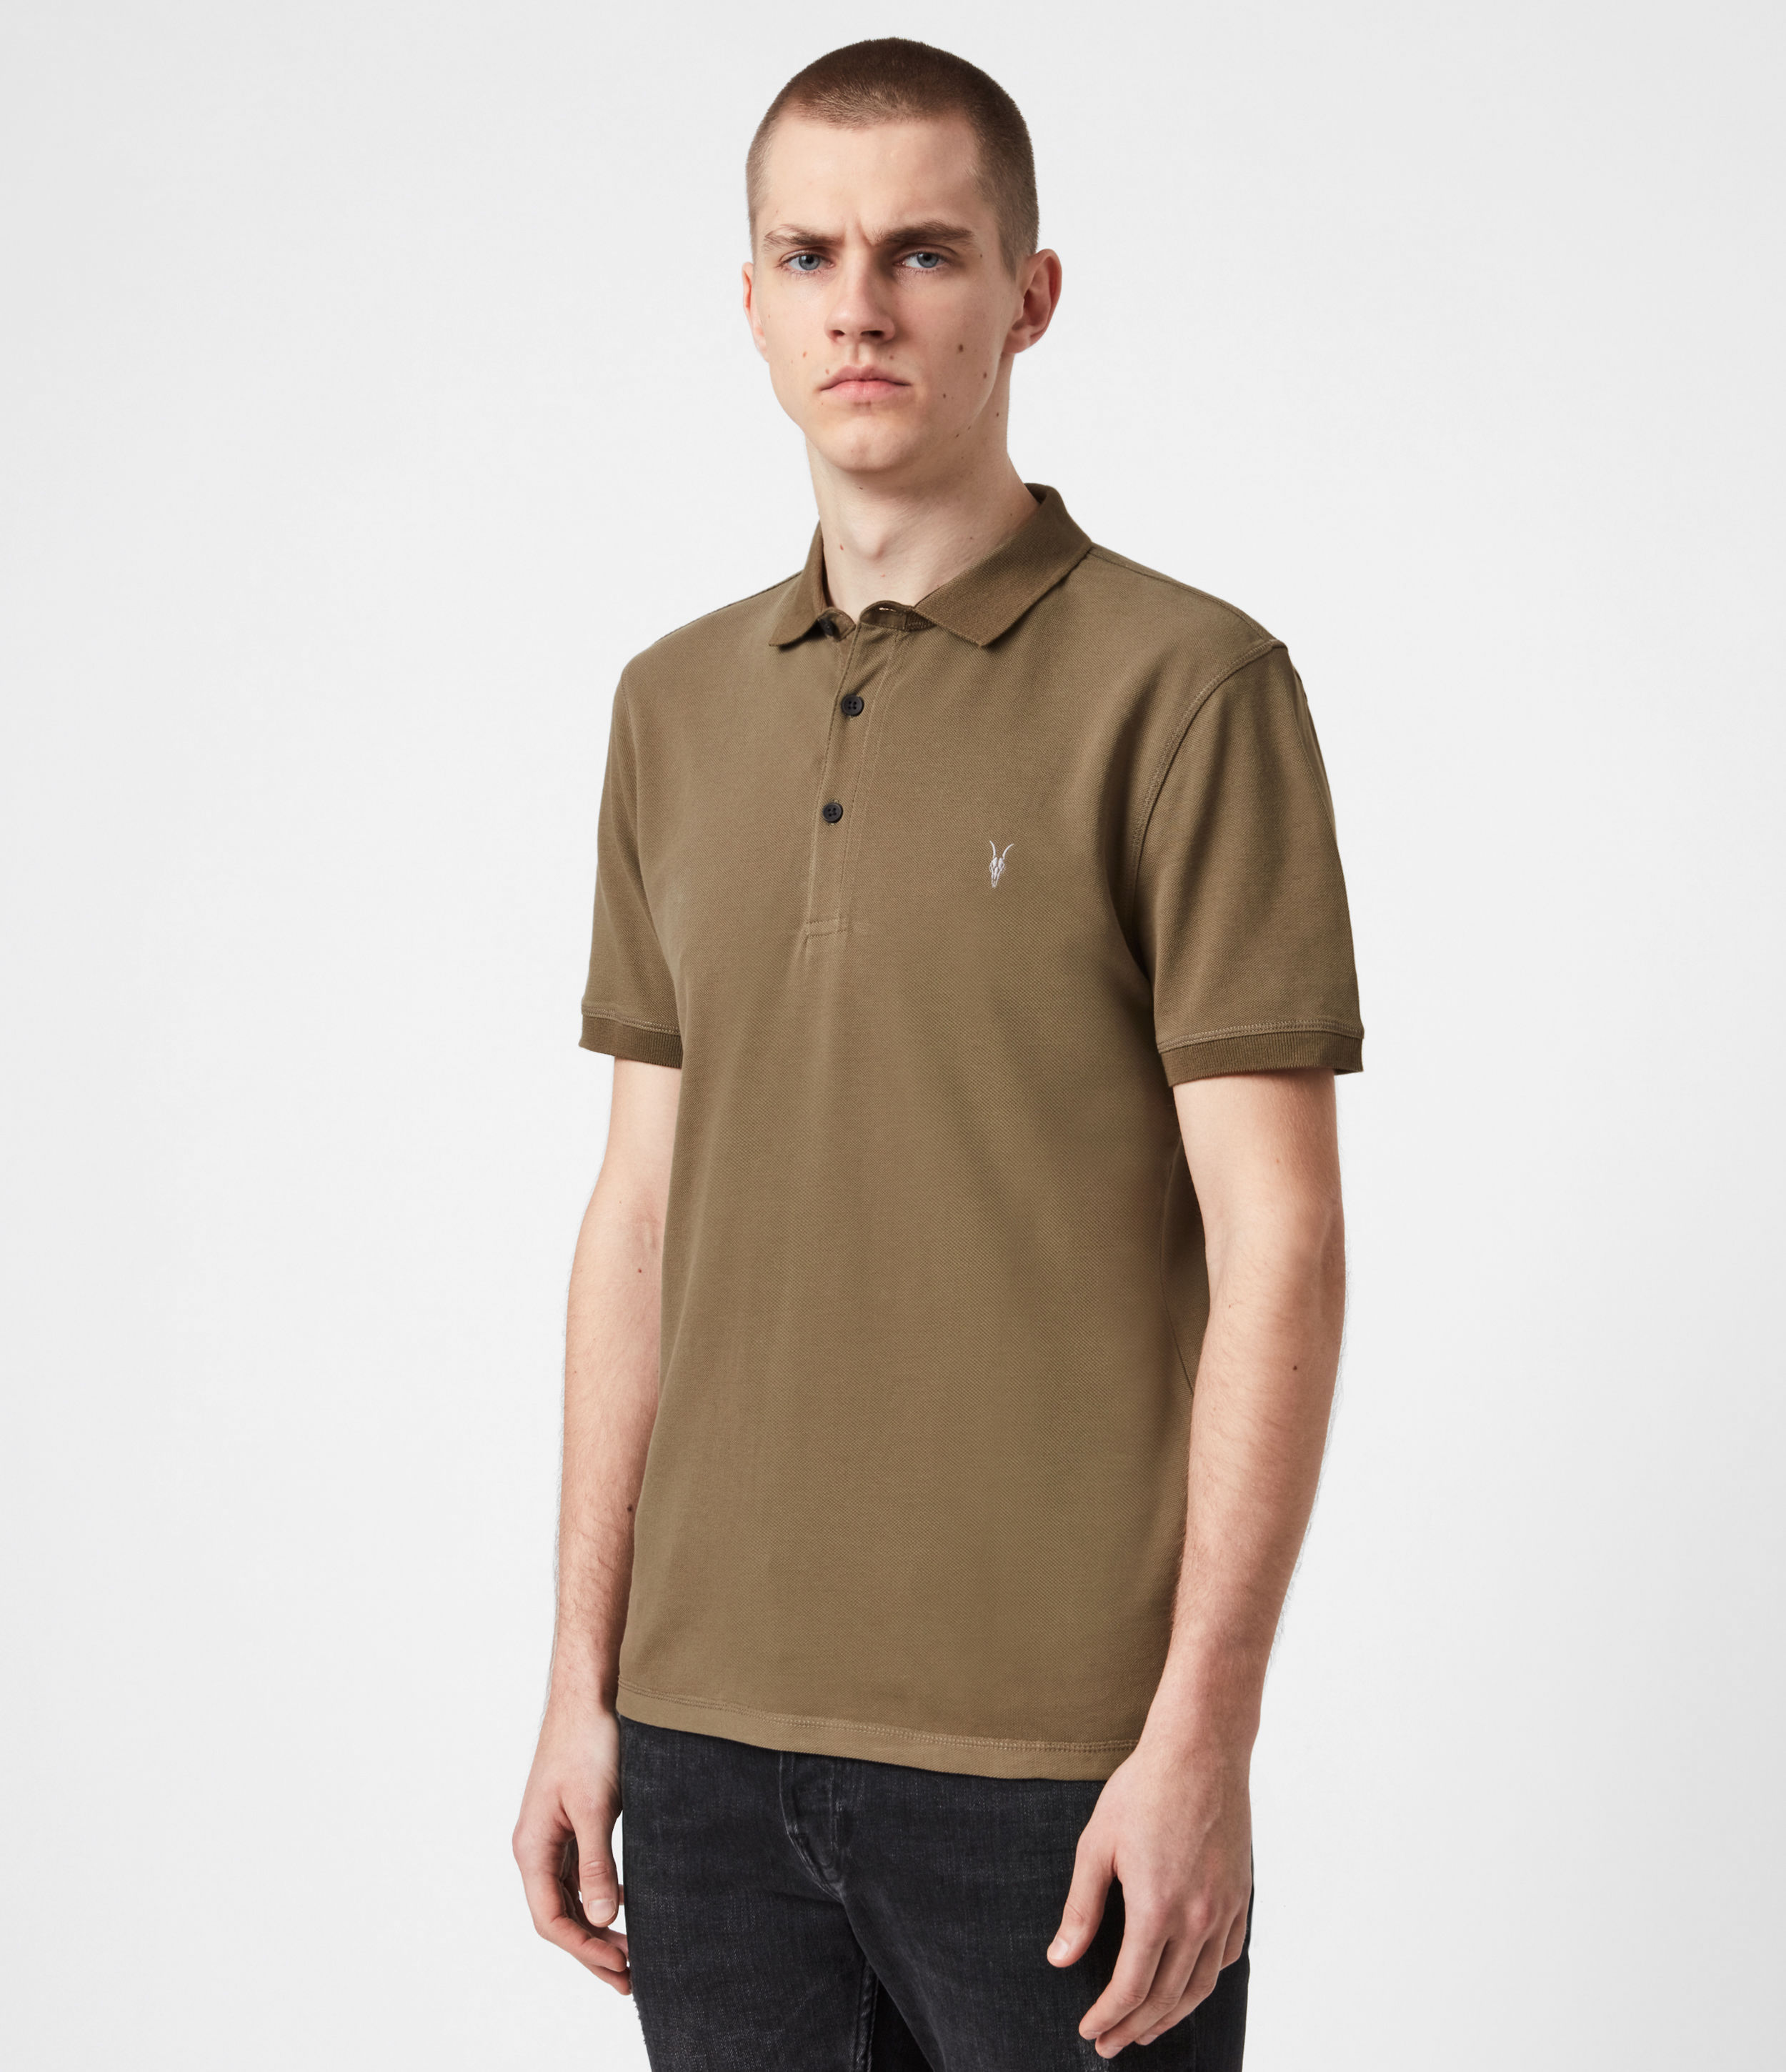 AllSaints Mens Reform Short Sleeve Polo Shirt, Saguaro Green, Size: XS